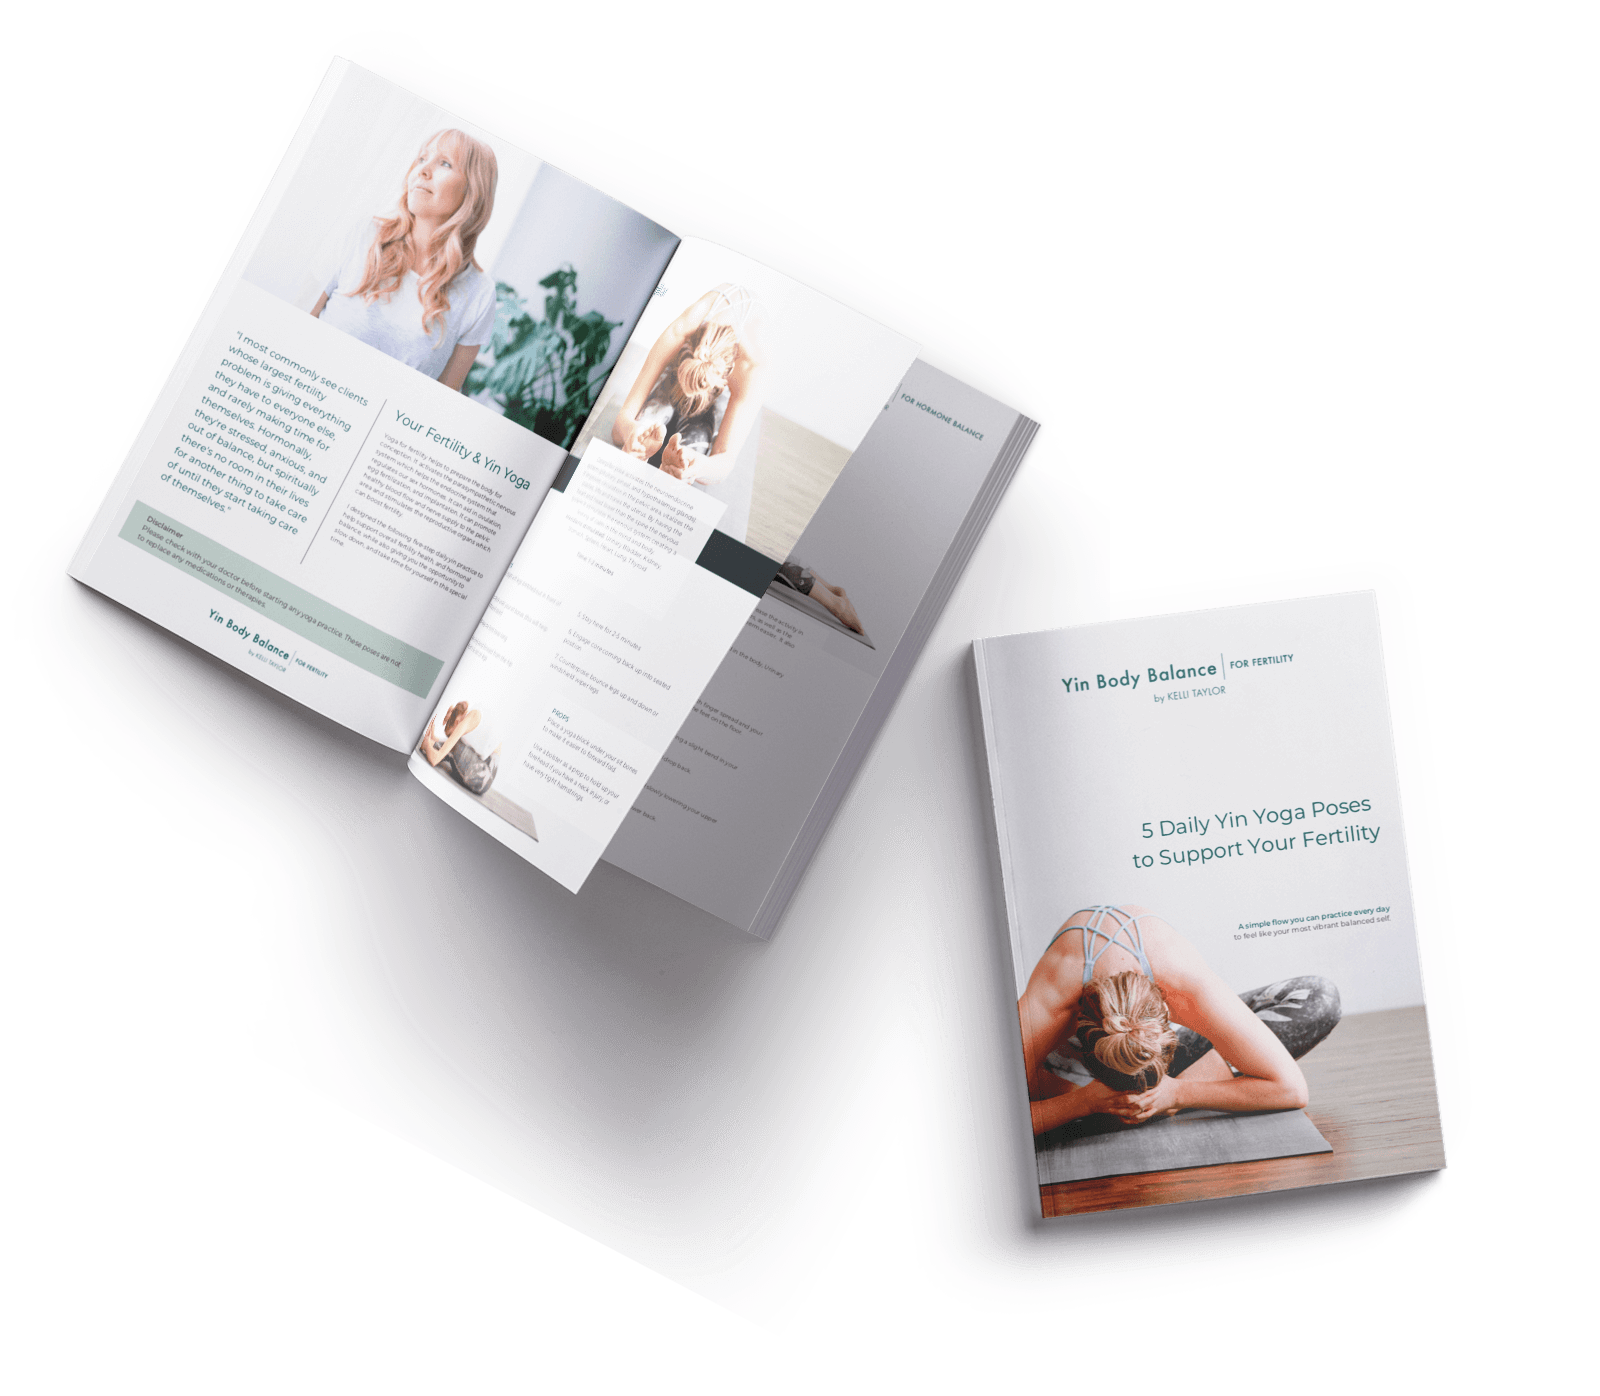 free-yin-yoga-sequence-for-fertility.png